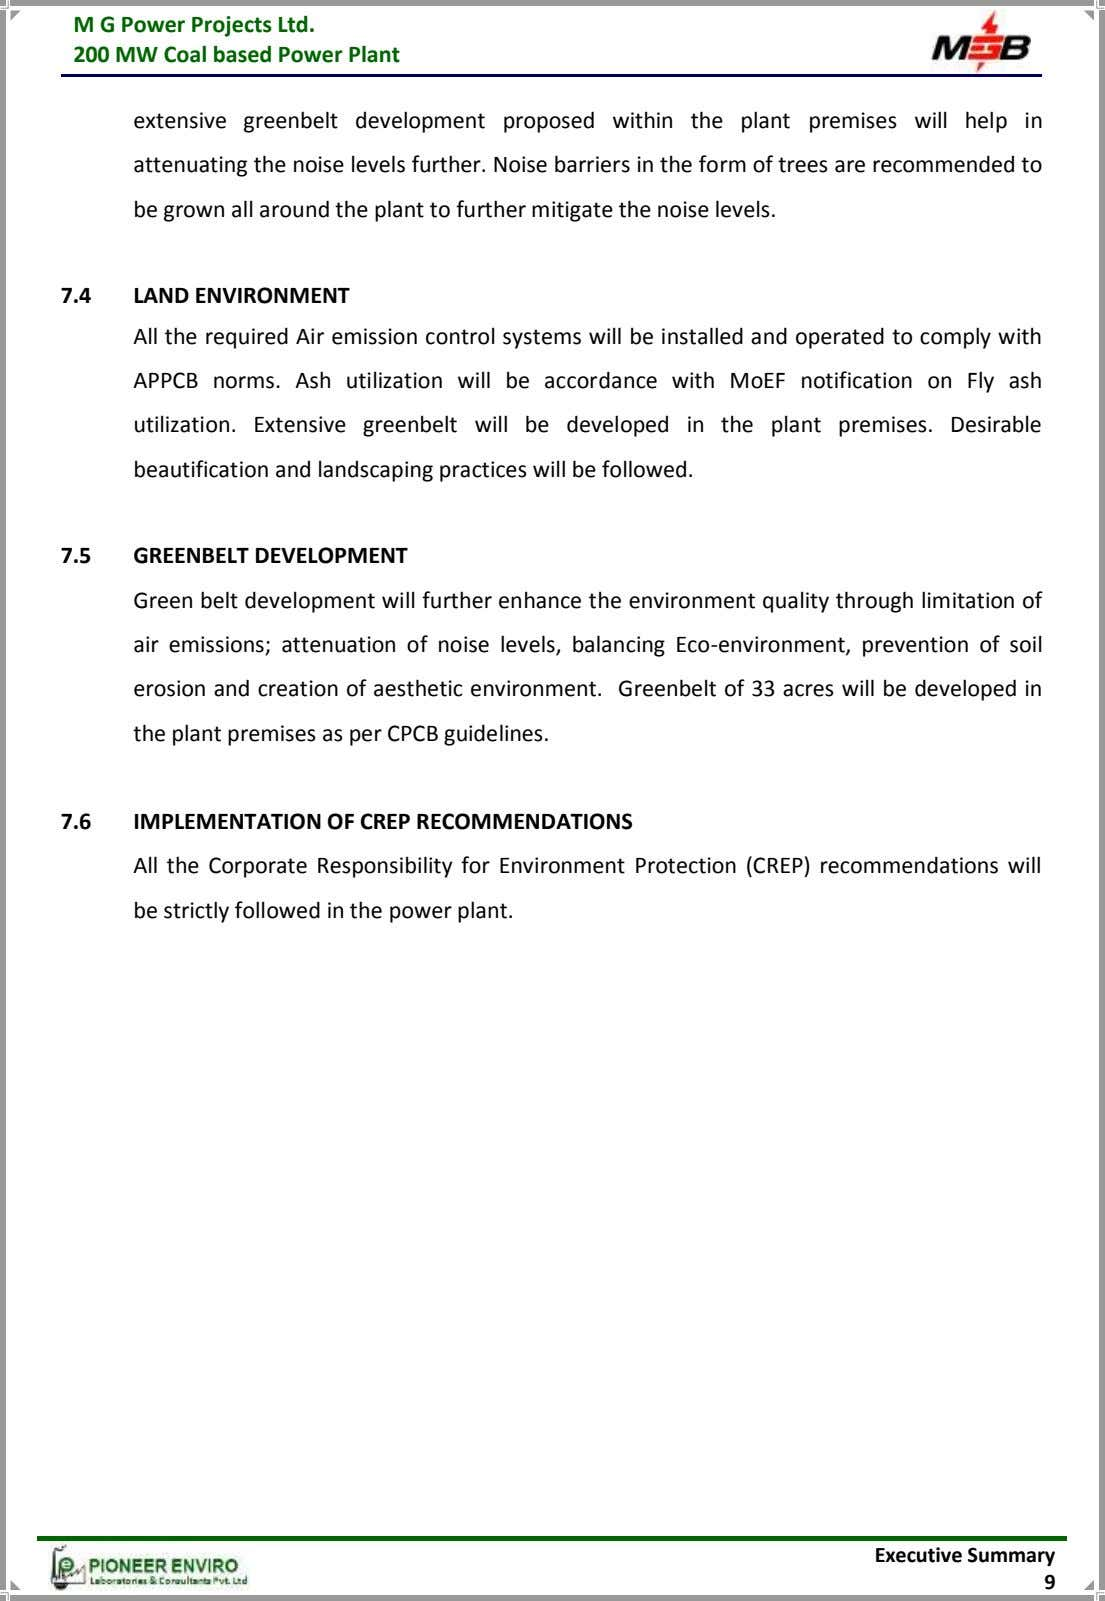 M G Power Projects Ltd. 200 MW Coal based Power Plant extensive greenbelt development proposed